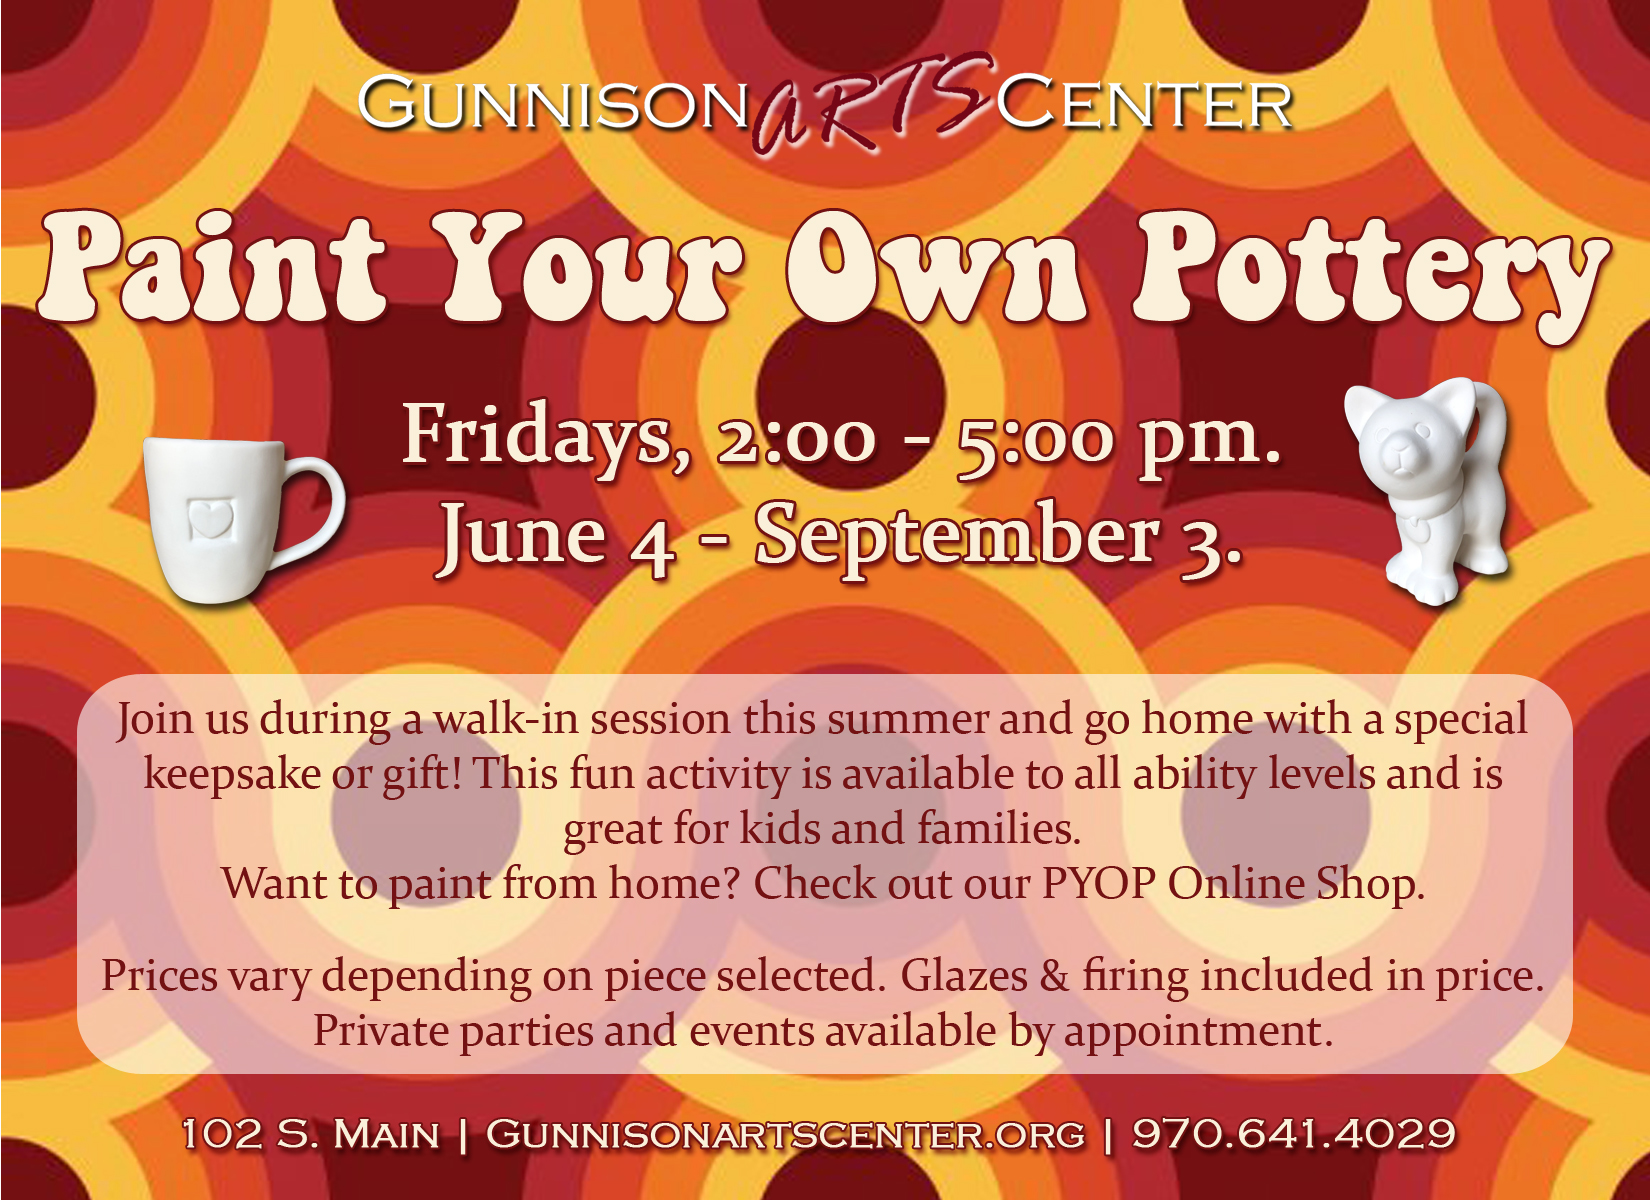 Paint Your Own Pottery Fridays